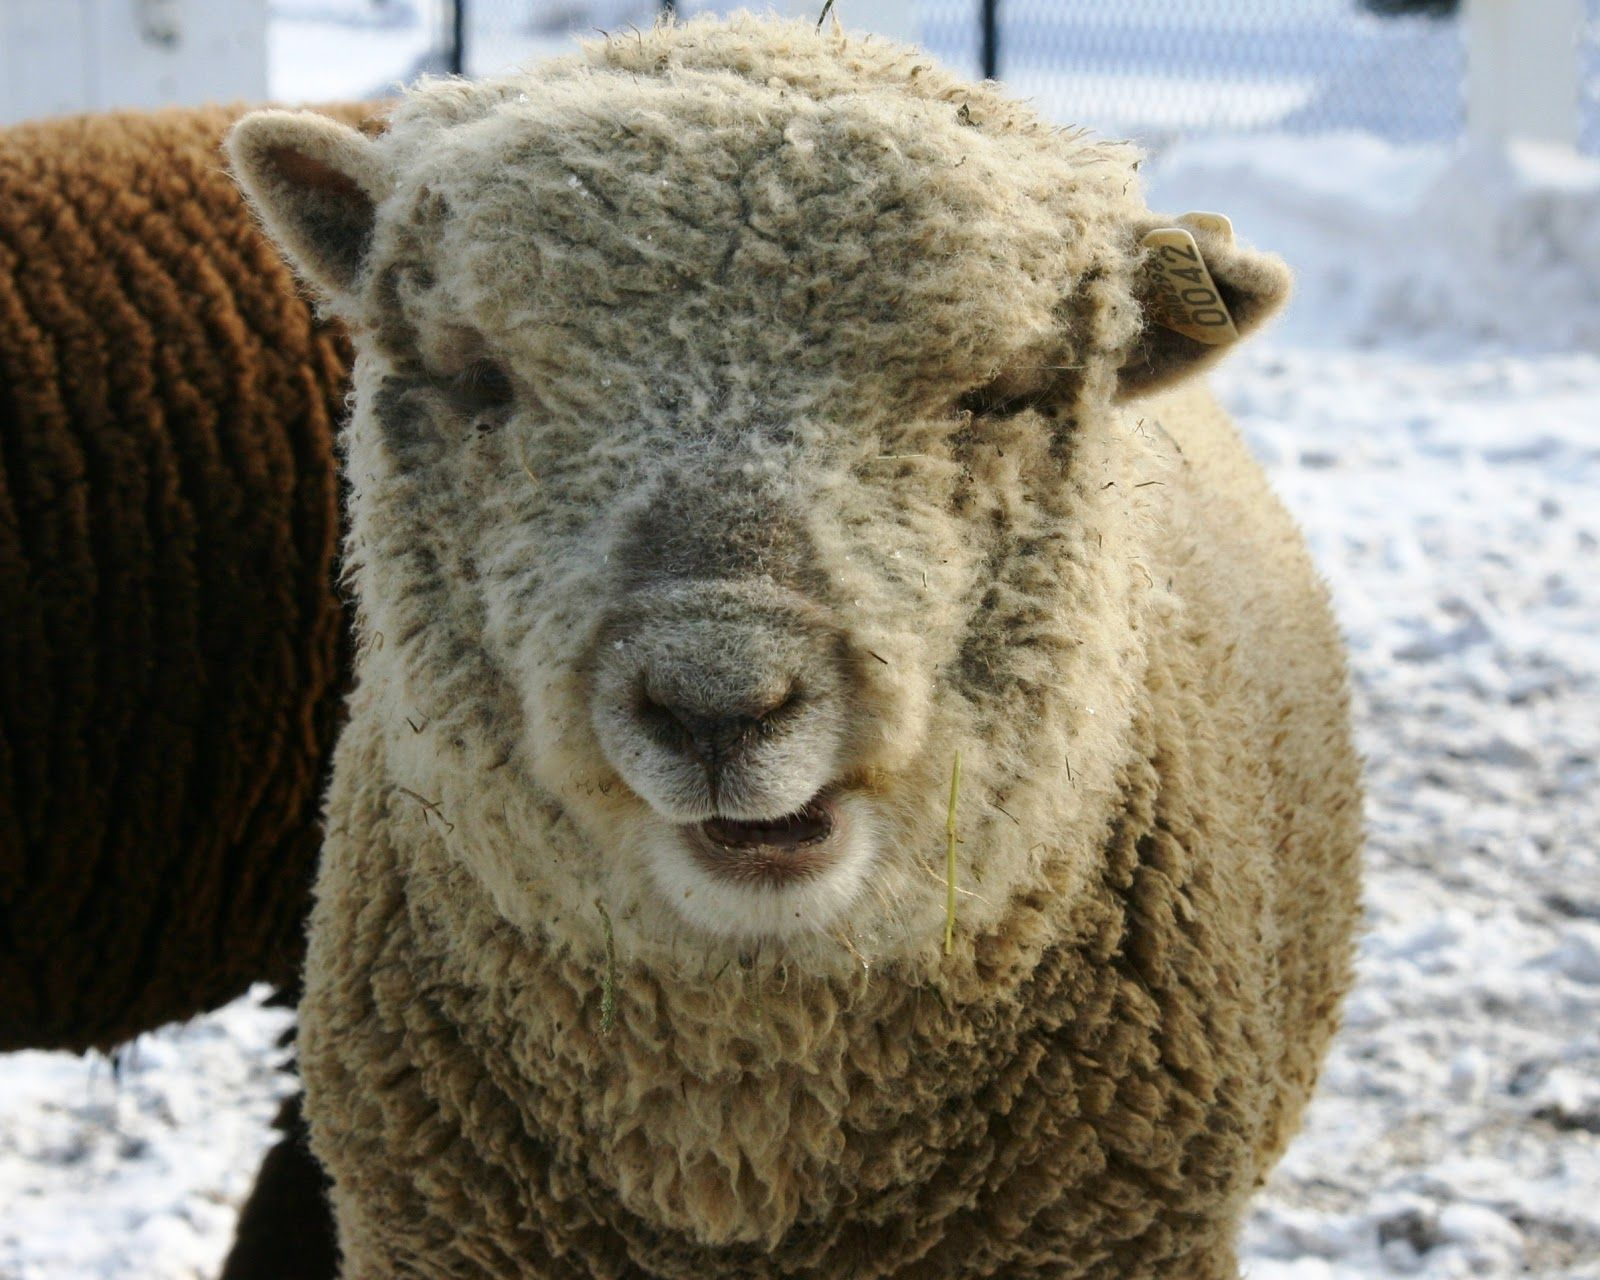 Image of: Down Syndrome Ramsheep Im Not Sure Which But Think Its Hungry Pinterest Down Syndrome Ramsheep Im Not Sure Which But Think Its Hungry